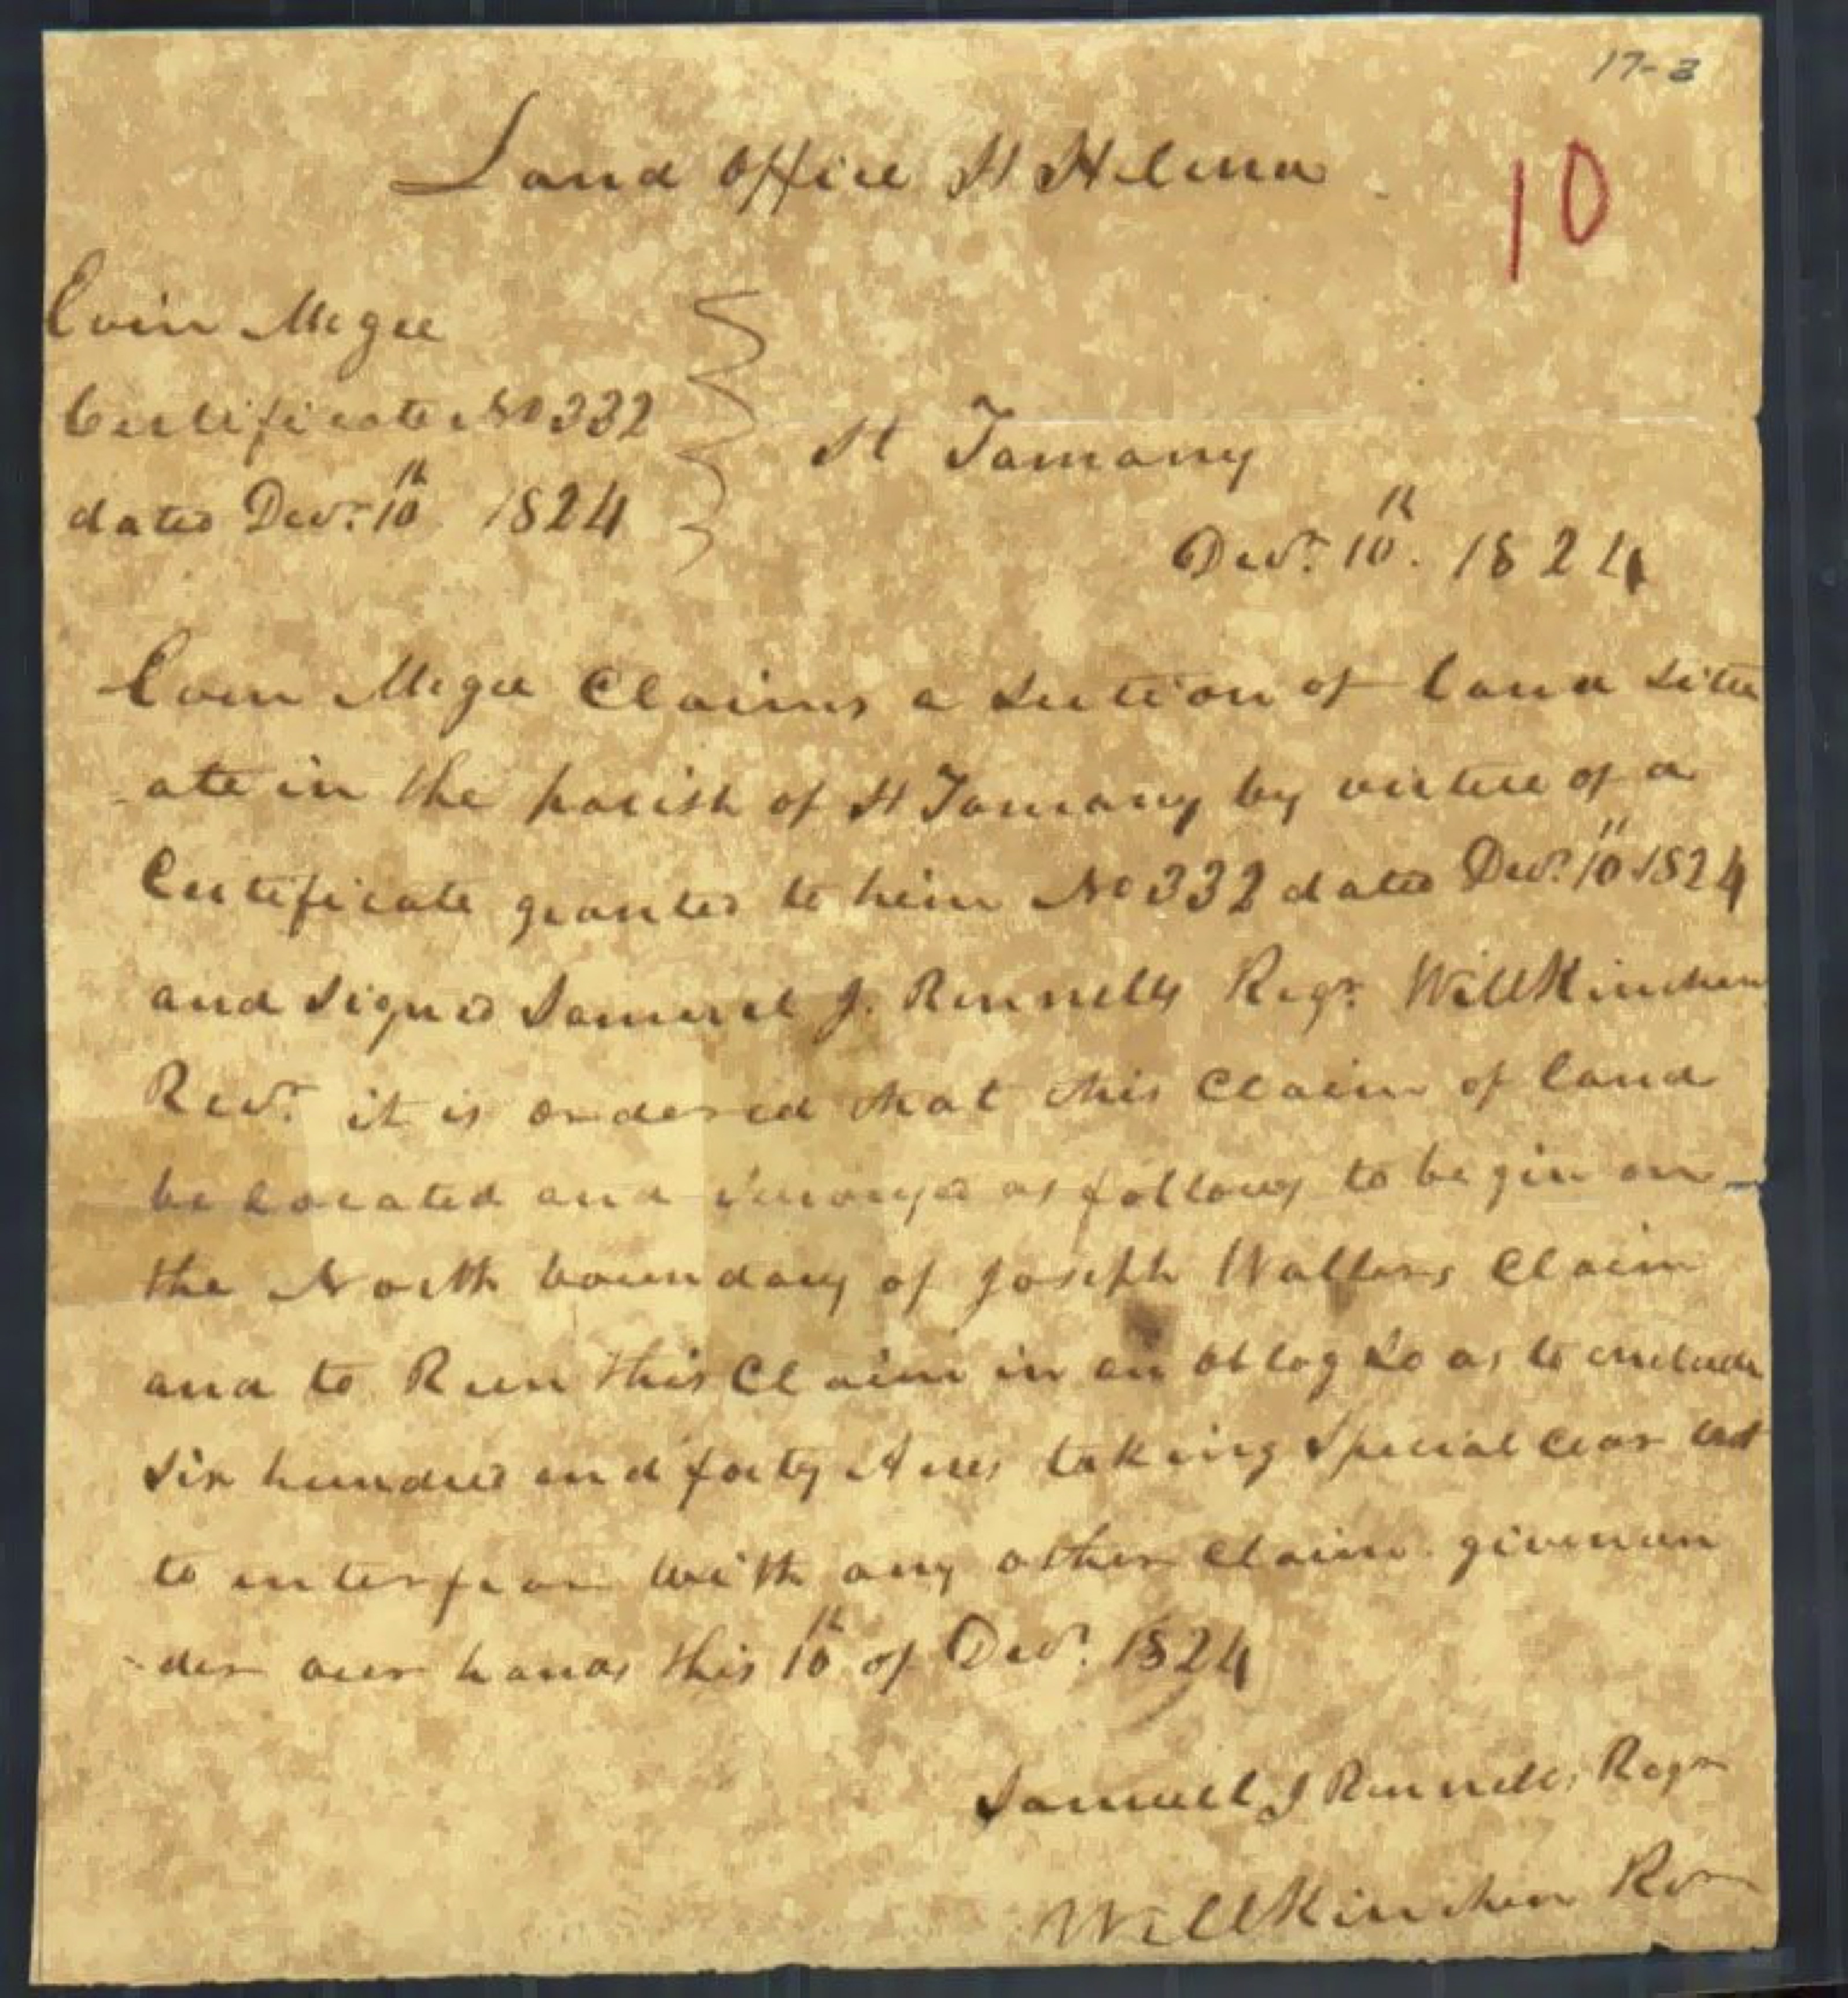 Letter for Land Certificate 332 for Evan Magee